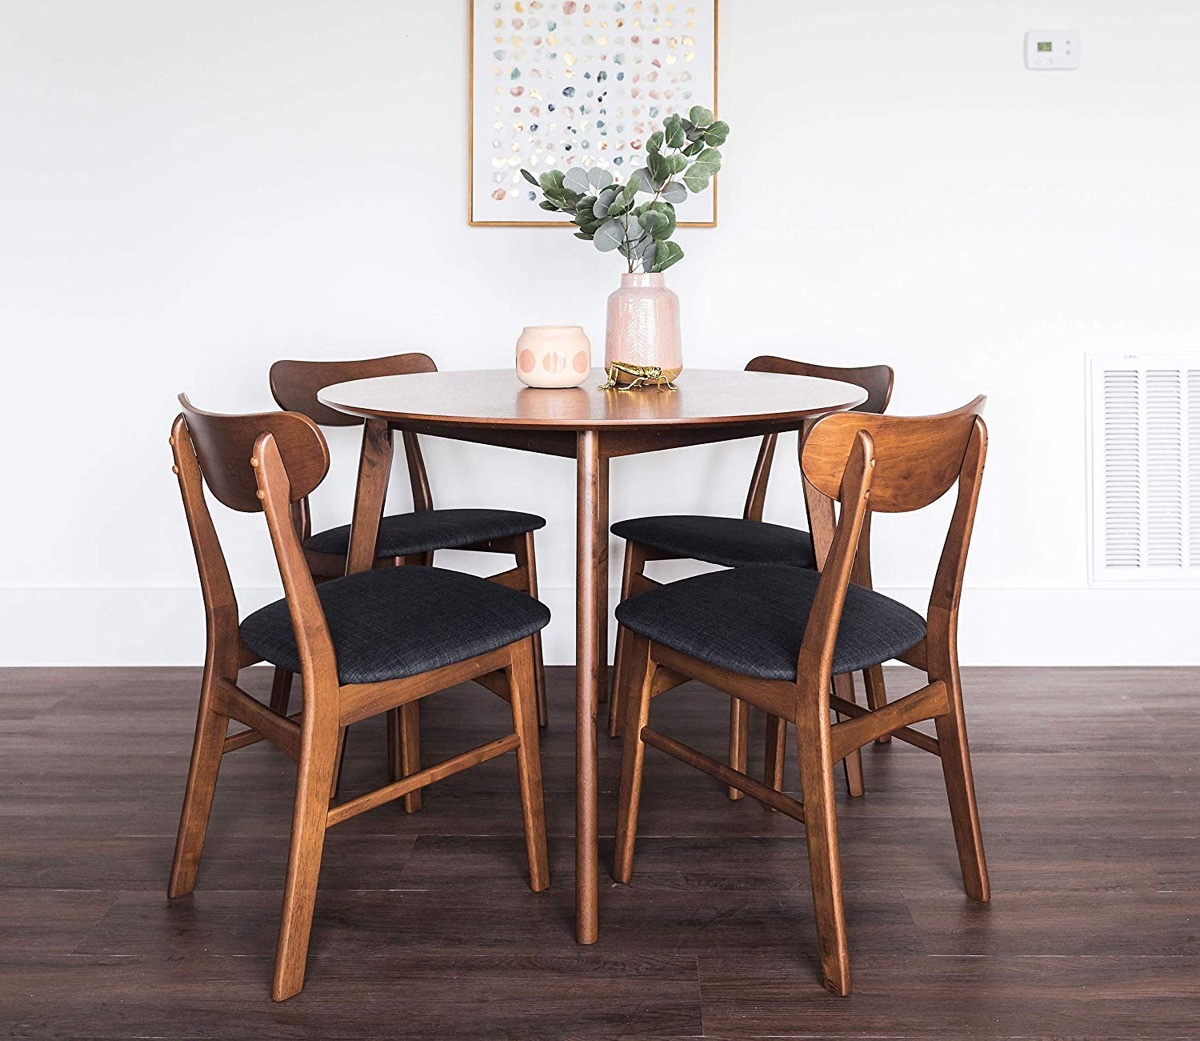 Mid-Century-Modern-Style-Round-Dining-Table-Set-With-4-Matching-Chairs-Upholsted-Seats-Grey